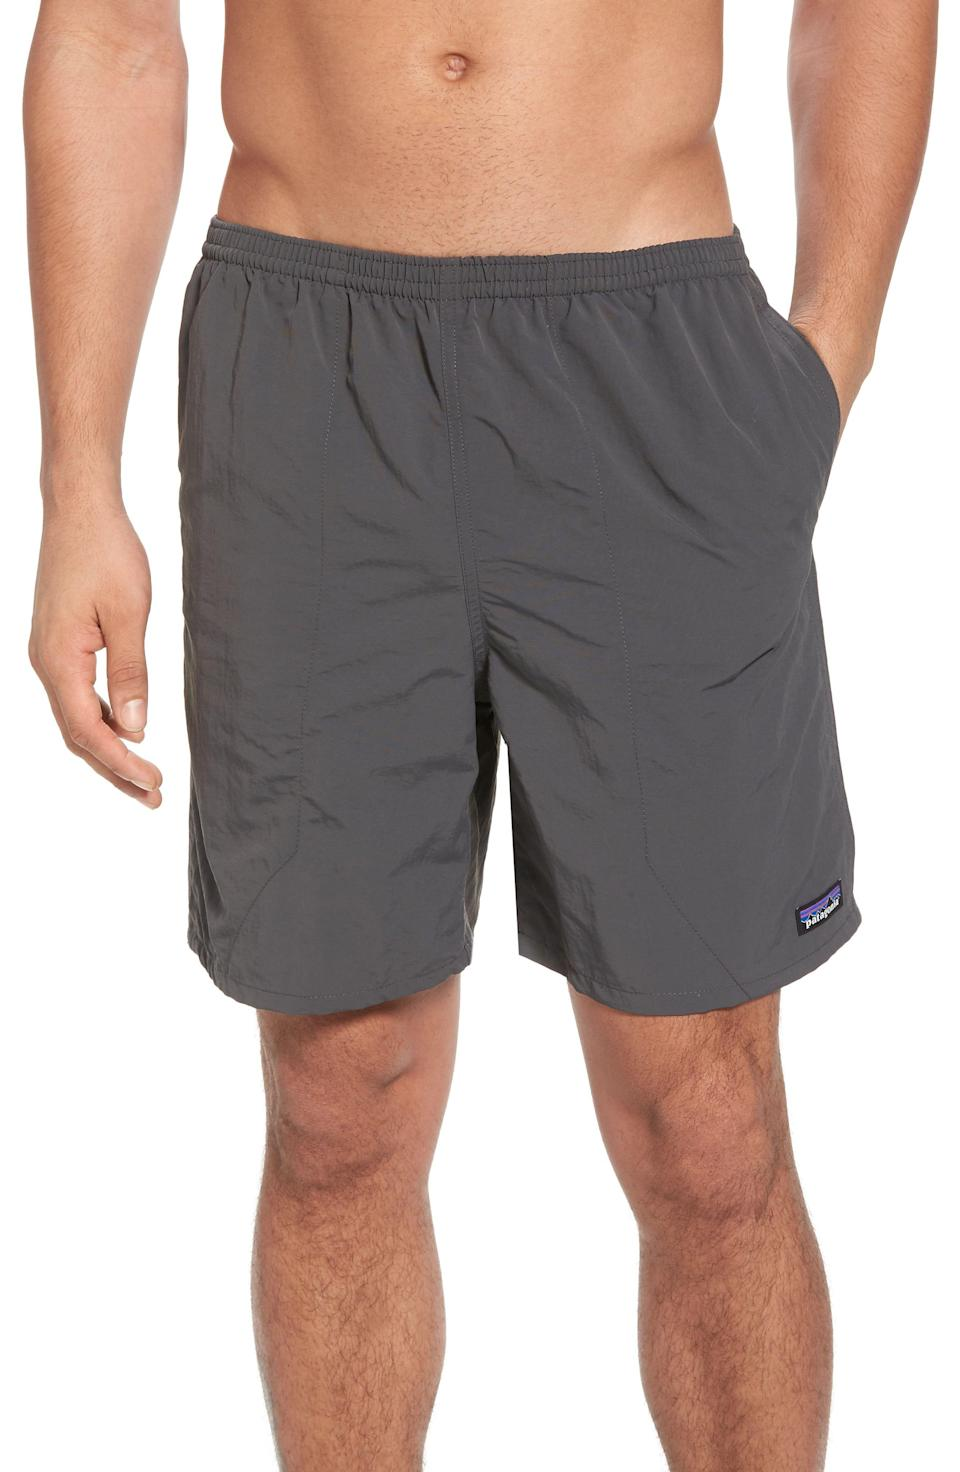 """<p><strong>PATAGONIA</strong></p><p><a href=""""https://go.redirectingat.com?id=74968X1596630&url=https%3A%2F%2Fwww.rei.com%2Fproduct%2F126804%2Fpatagonia-baggies-long-shorts-mens-7-inseam&sref=https%3A%2F%2Fwww.thepioneerwoman.com%2Fholidays-celebrations%2Fgifts%2Fg32883915%2Flast-minute-fathers-day-gifts%2F"""" rel=""""nofollow noopener"""" target=""""_blank"""" data-ylk=""""slk:Shop Now"""" class=""""link rapid-noclick-resp"""">Shop Now</a></p><p>These sleek, quick-drying trunks will keep him looking good all summer long. They're made from recycled nylon and have a mesh lining.</p>"""